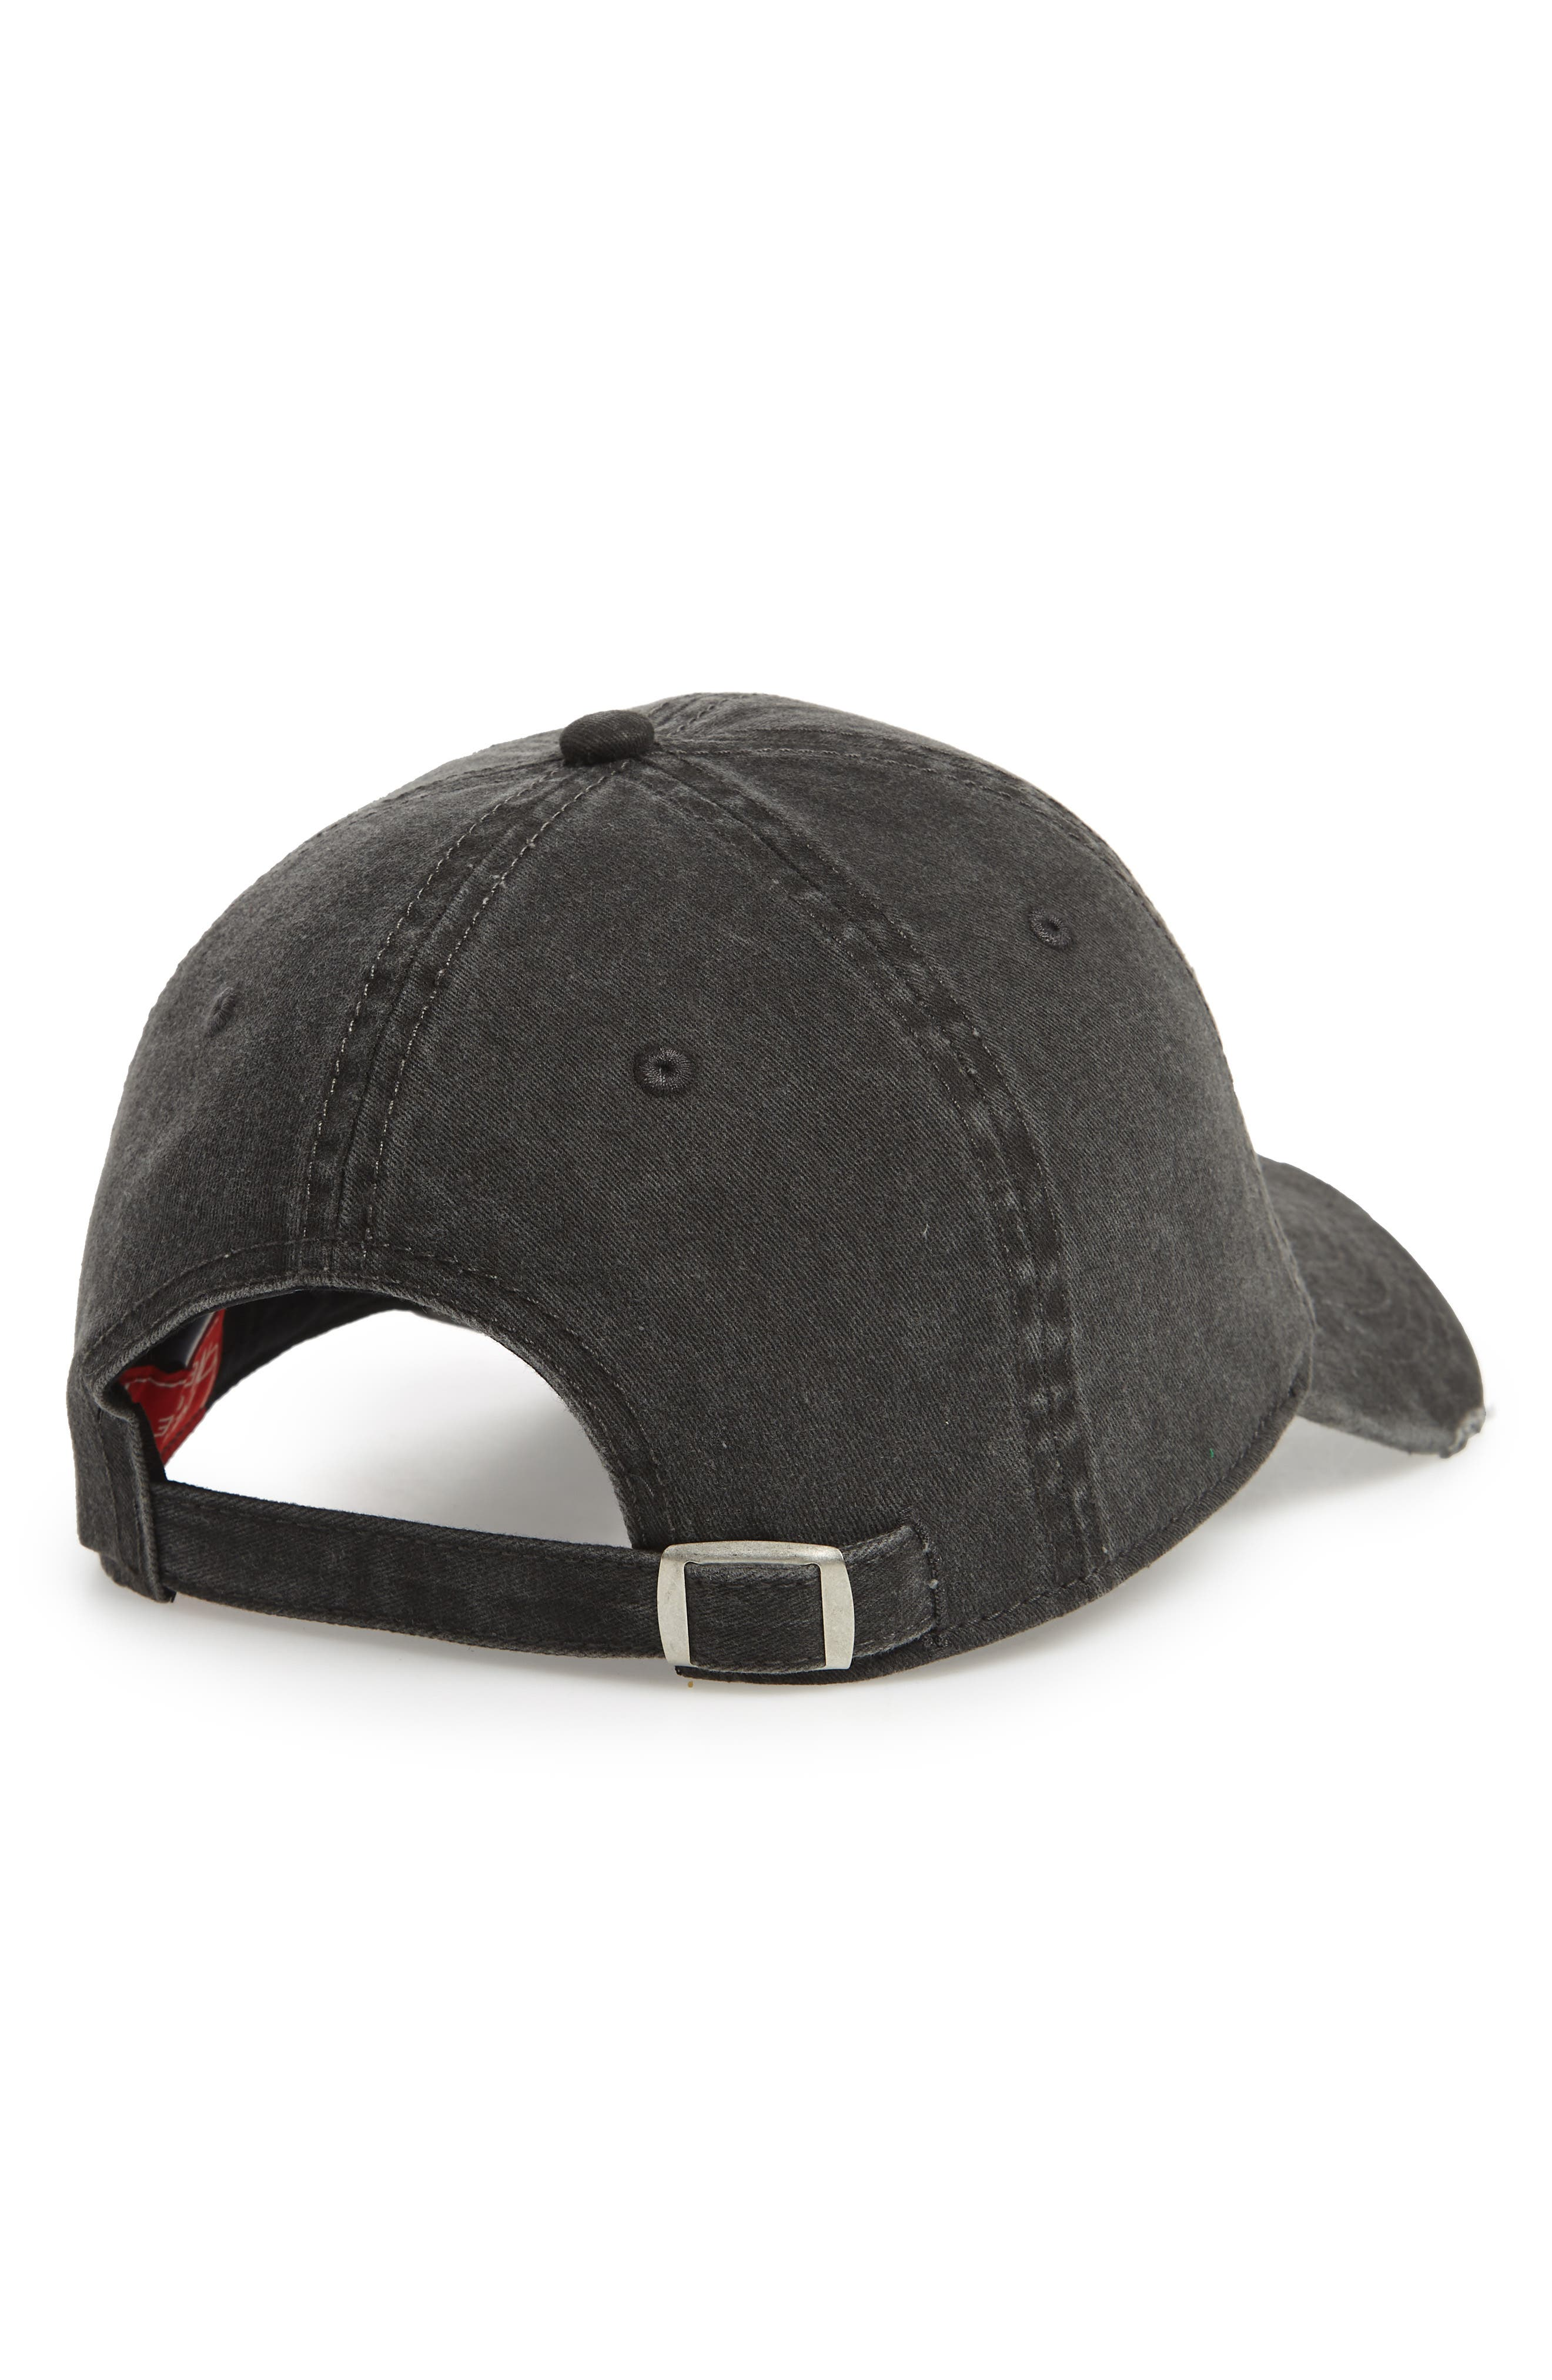 Iconic - Rock 'N' Roll Baseball Cap,                             Alternate thumbnail 2, color,                             001